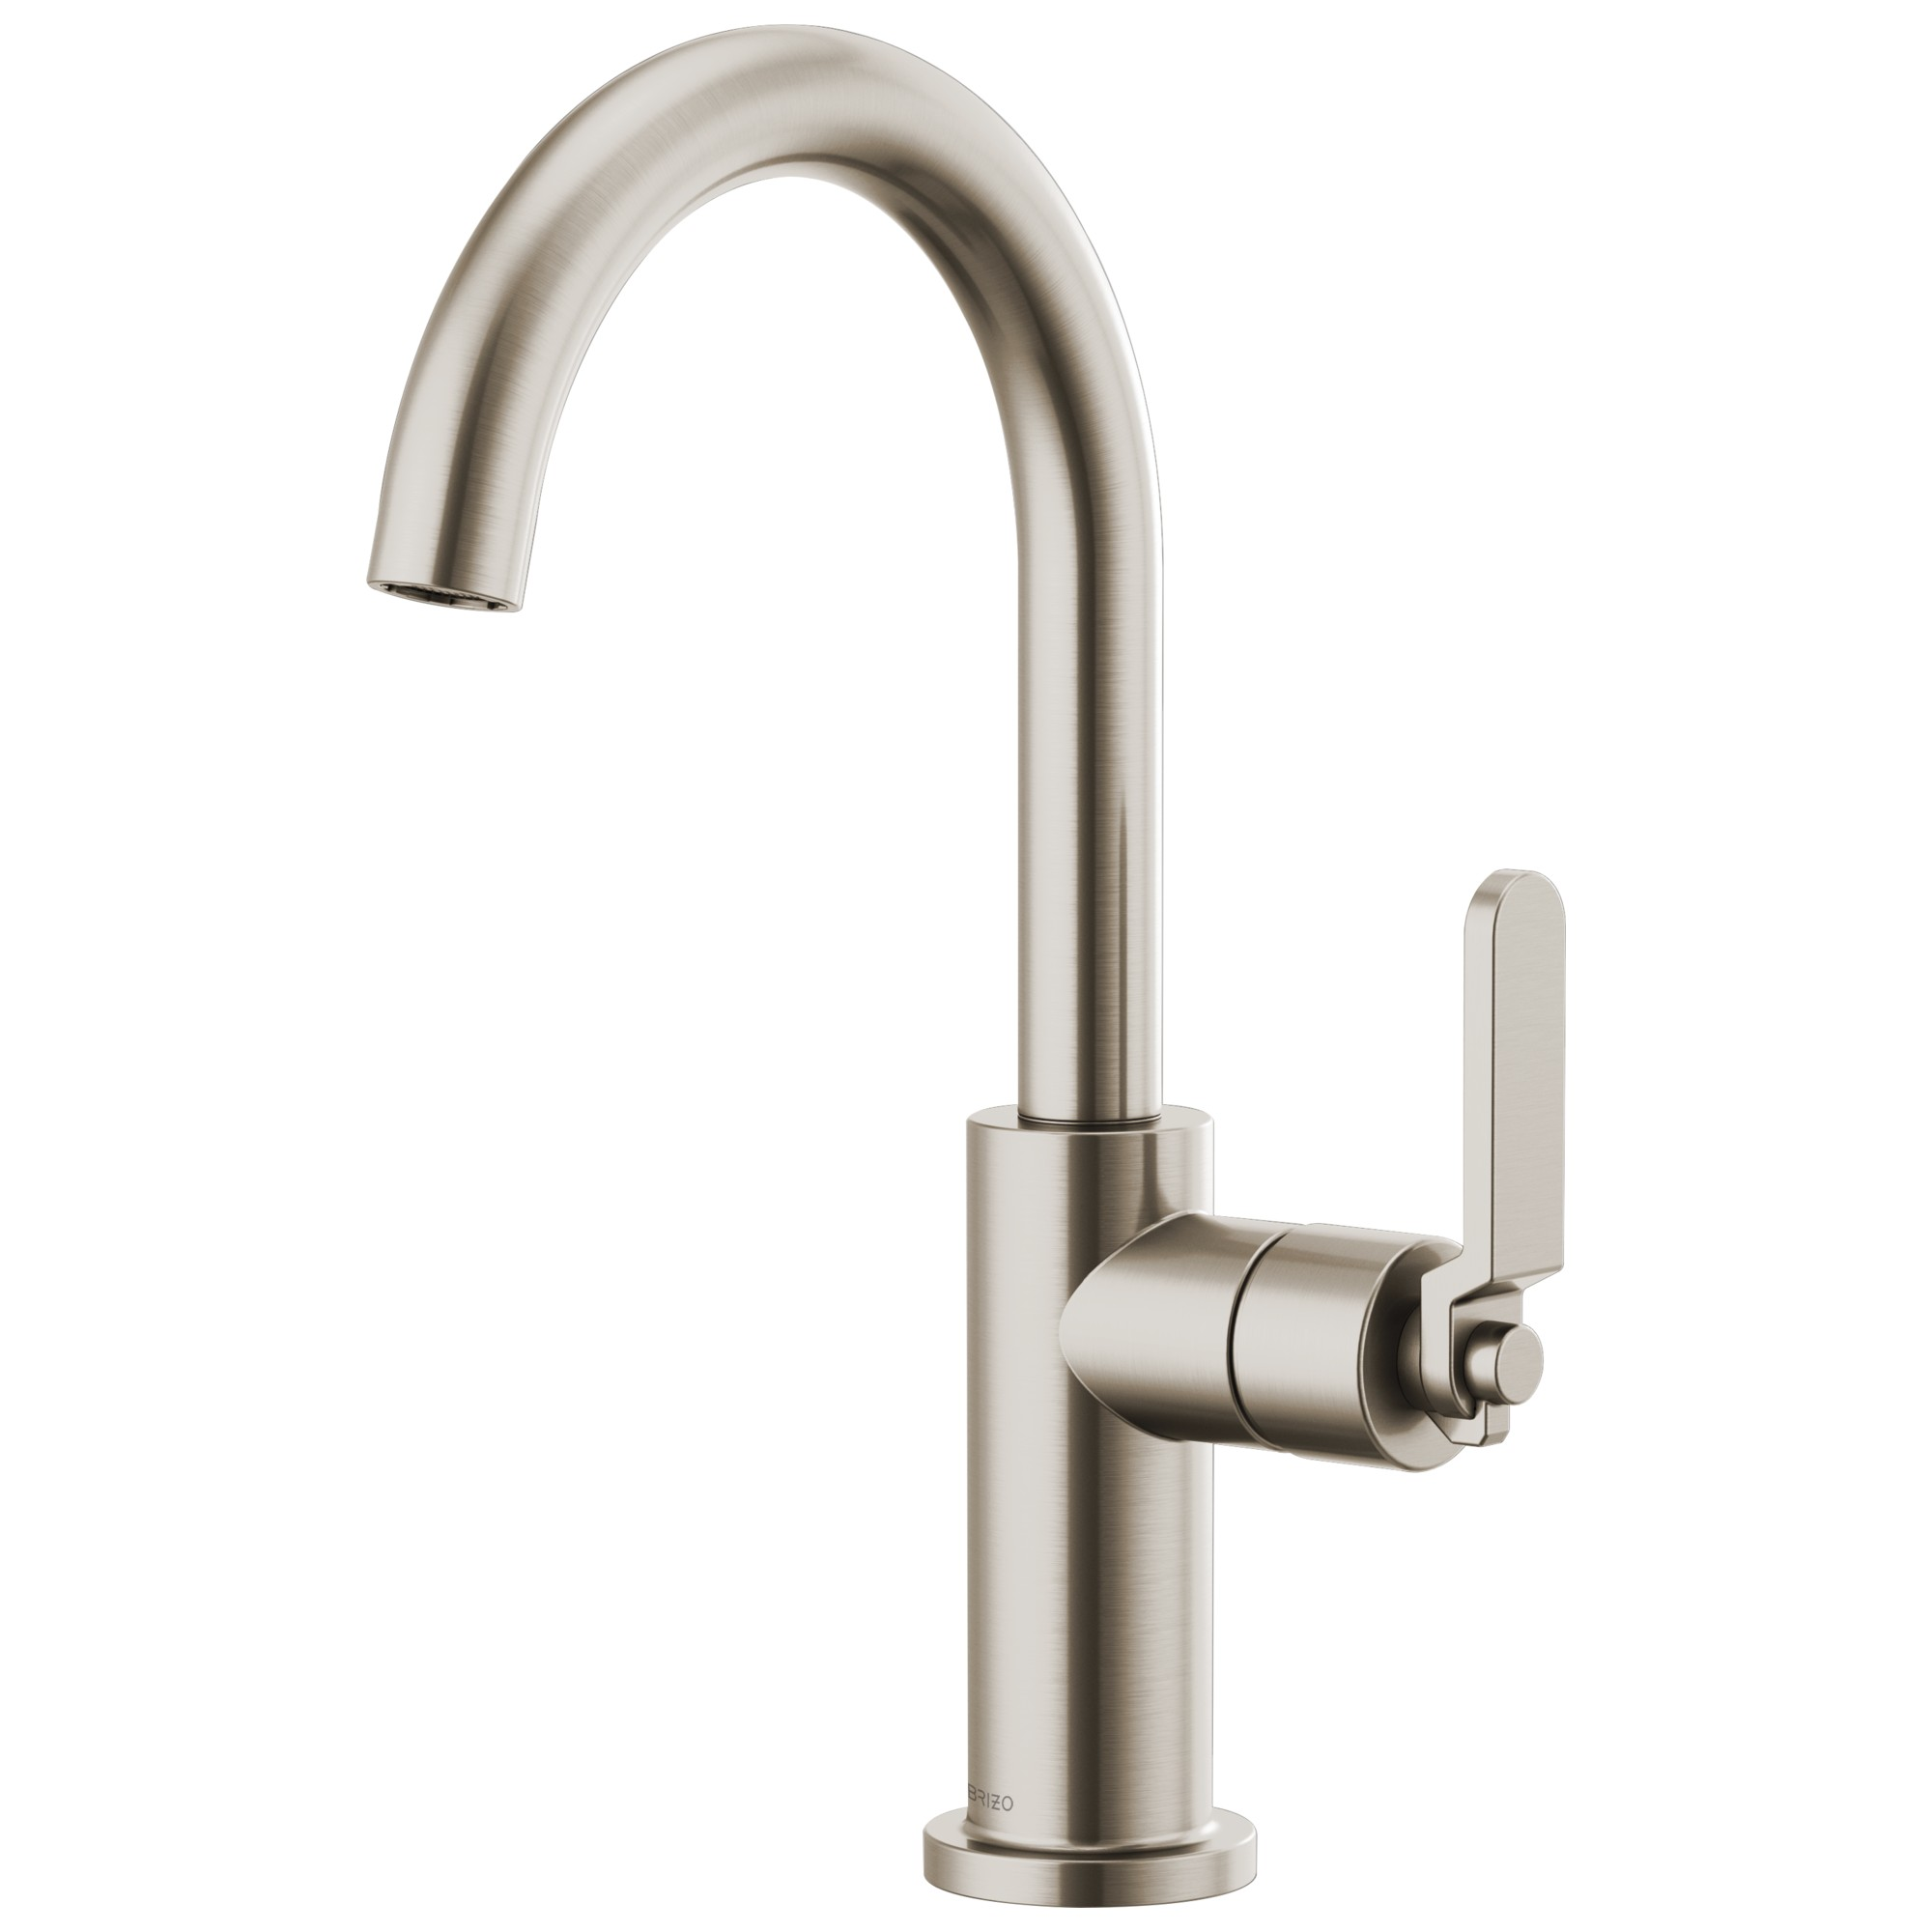 Brizo 61044LF-SS Litze Bar Faucet with Arc Spout and Industrial Handle - Stainless